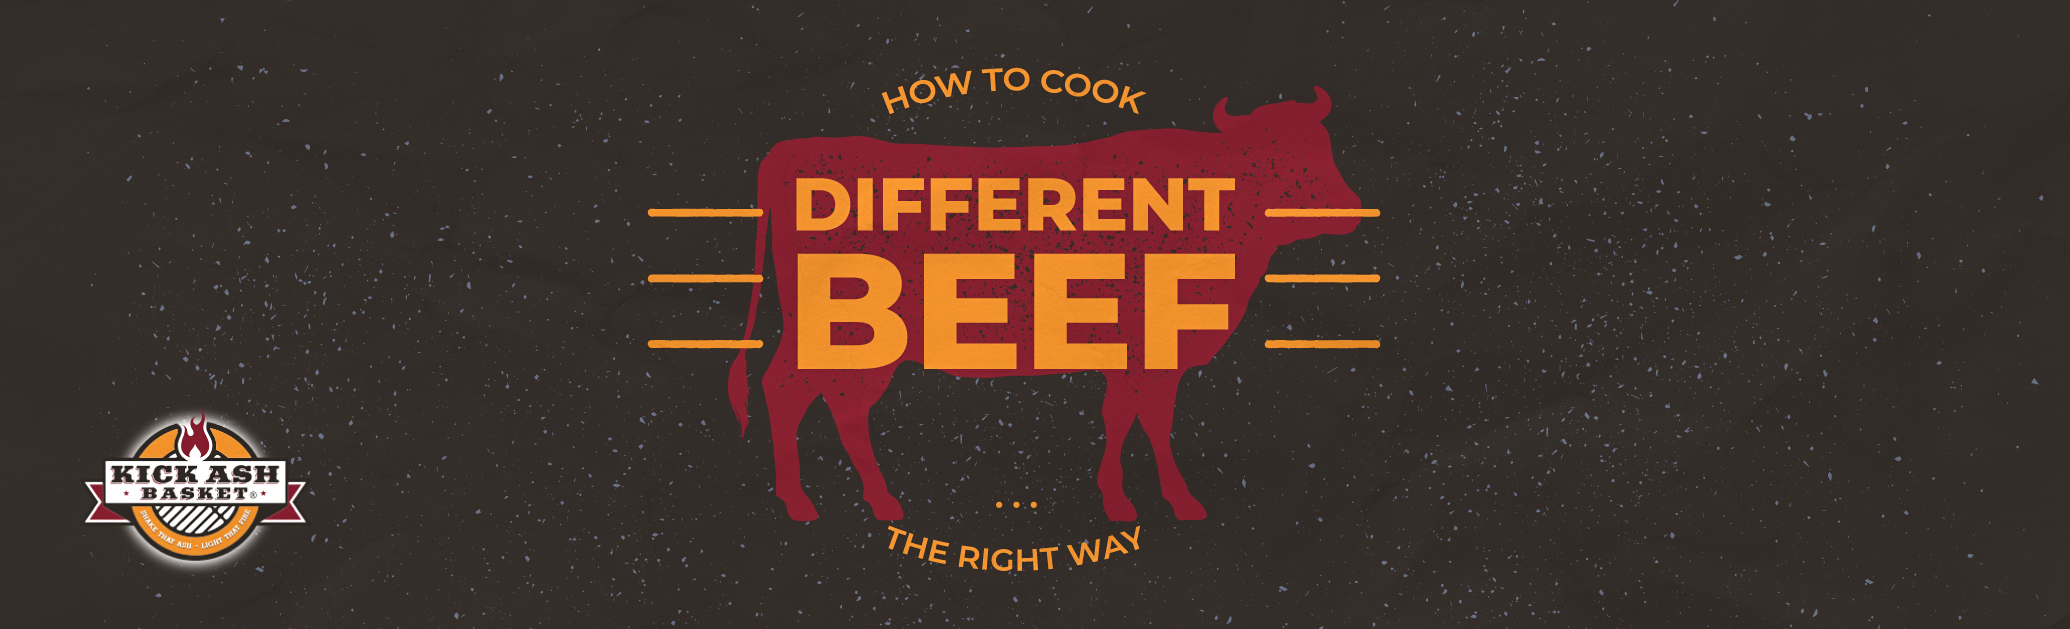 How to Cook Different Beef the Right Way